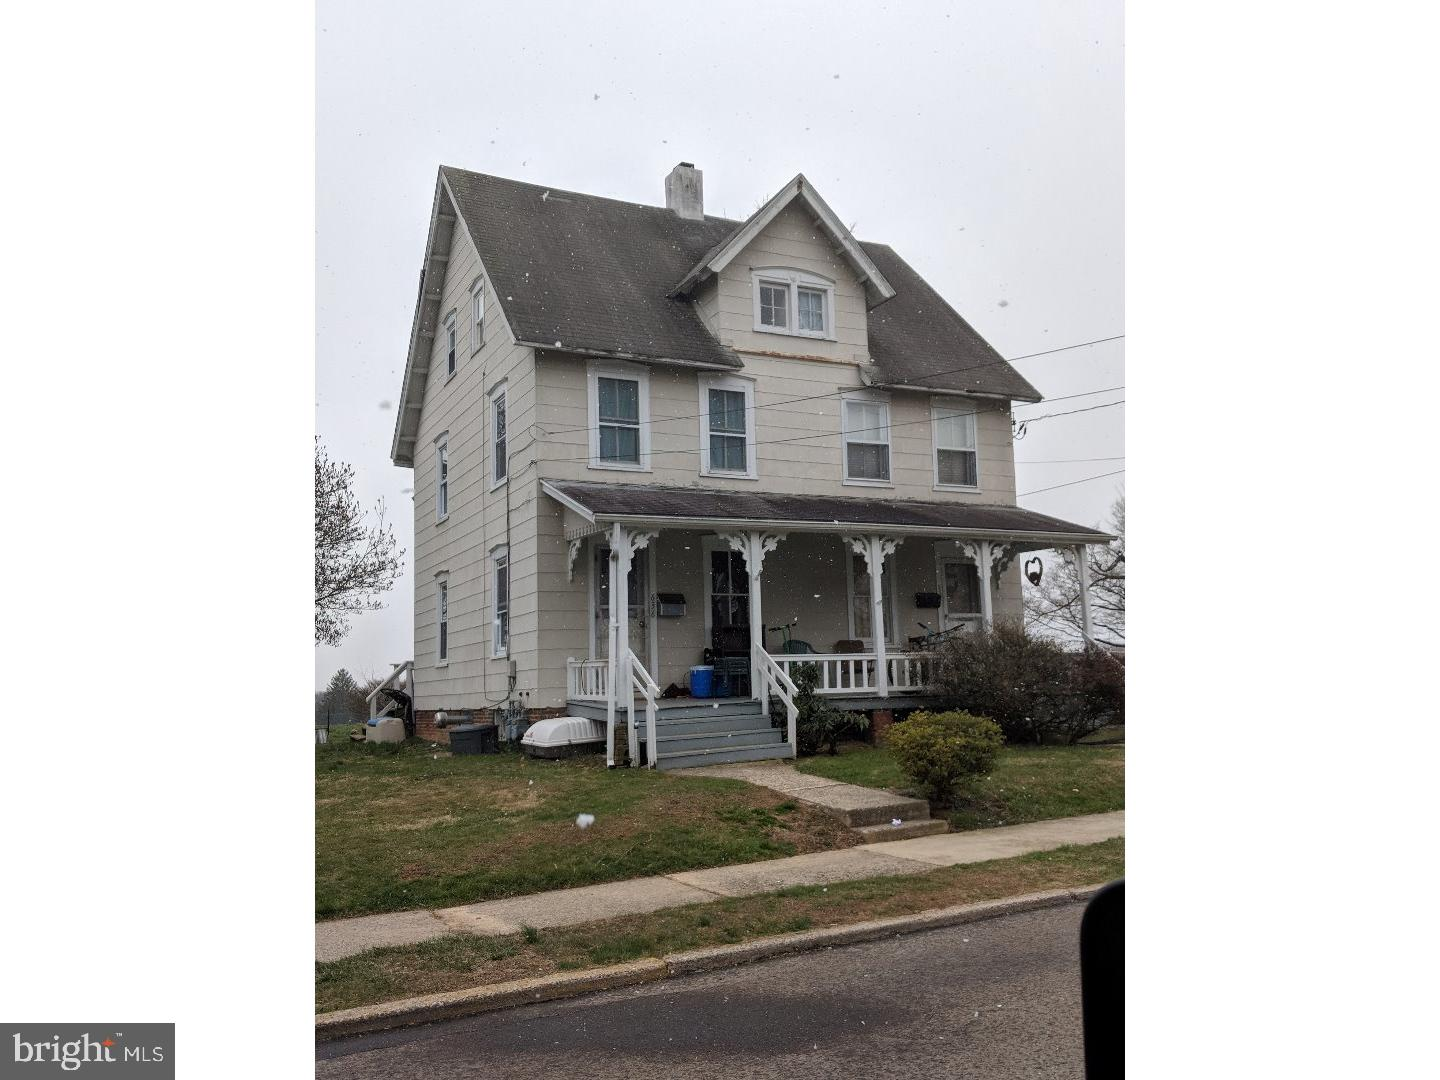 Take a look at this duplex rental with qualified tenants in place who want to stay.  Rents are $950 and $900.  One tenant has been there over 8 years and the other is related to them.  This is a large property which backs up to the school.  Each side offers two bedrooms on the 2nd floor and a full dorm style 3rd floor room.  Some of the windows have been replaced with vinyl windows.  Hardwood floors are in many of the rooms.  Bathrooms are very large.  Curbs are presently being replaced to meet Boro standards and some sidewalk repairs are being done.  634 was renovated in the past several years.  636 has not been updated because the tenants have been resident so long.  There is a new heater in 636 and new electric boxes and outside service